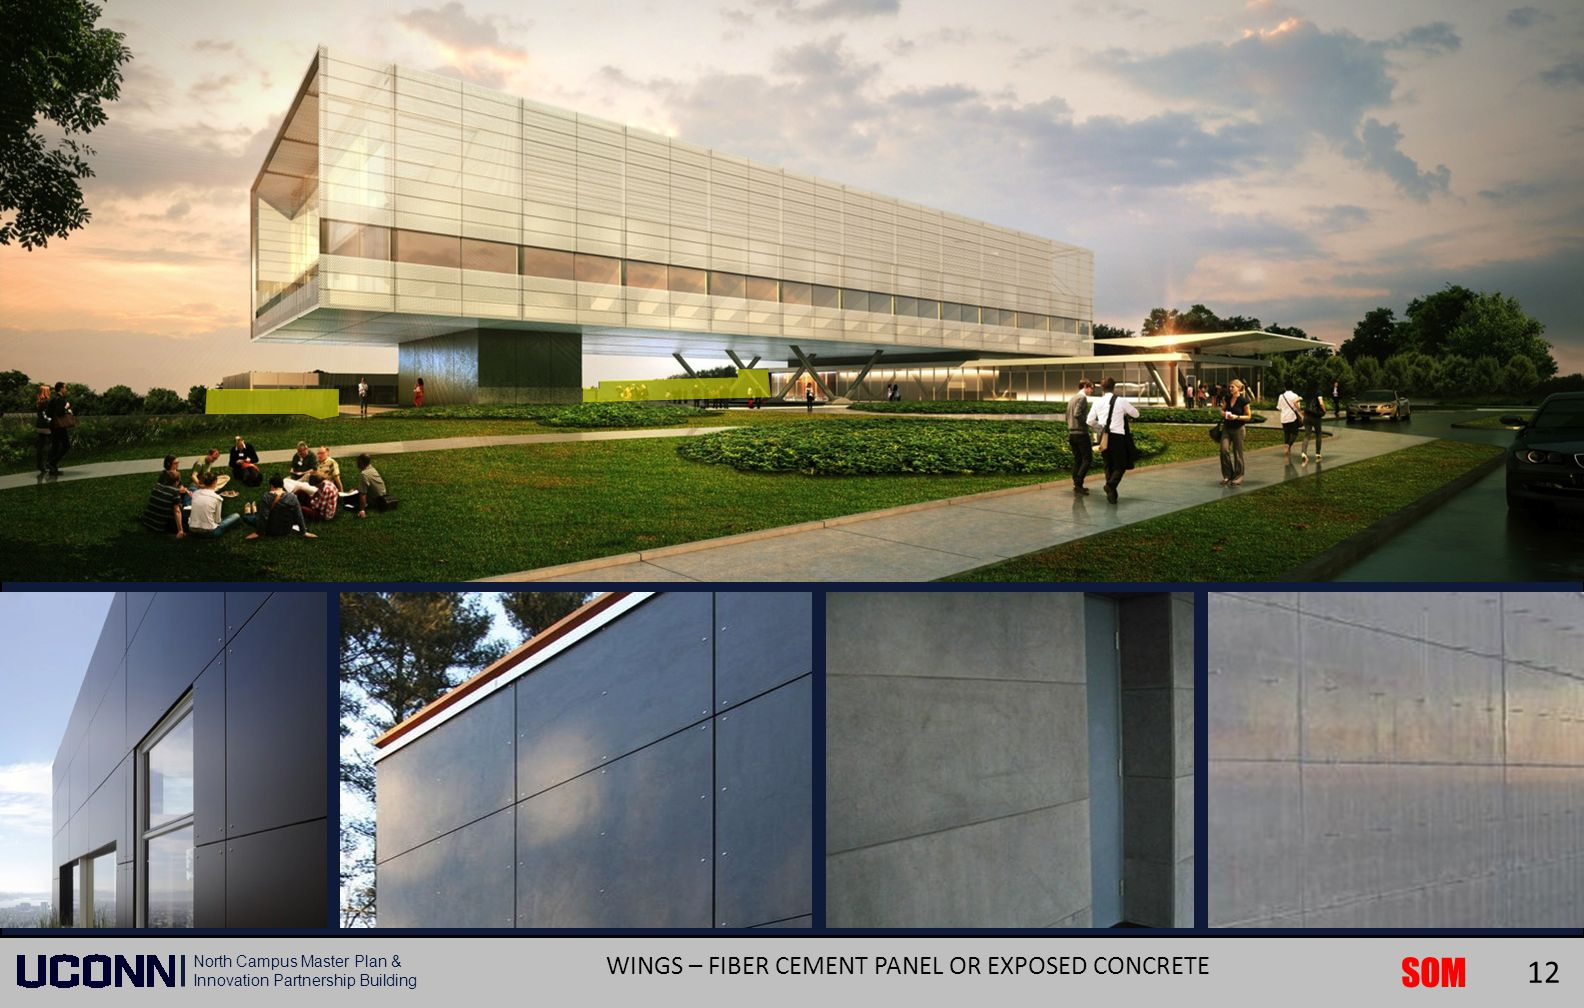 WINGS – FIBER CEMENT PANEL OR EXPOSED CONCRETE